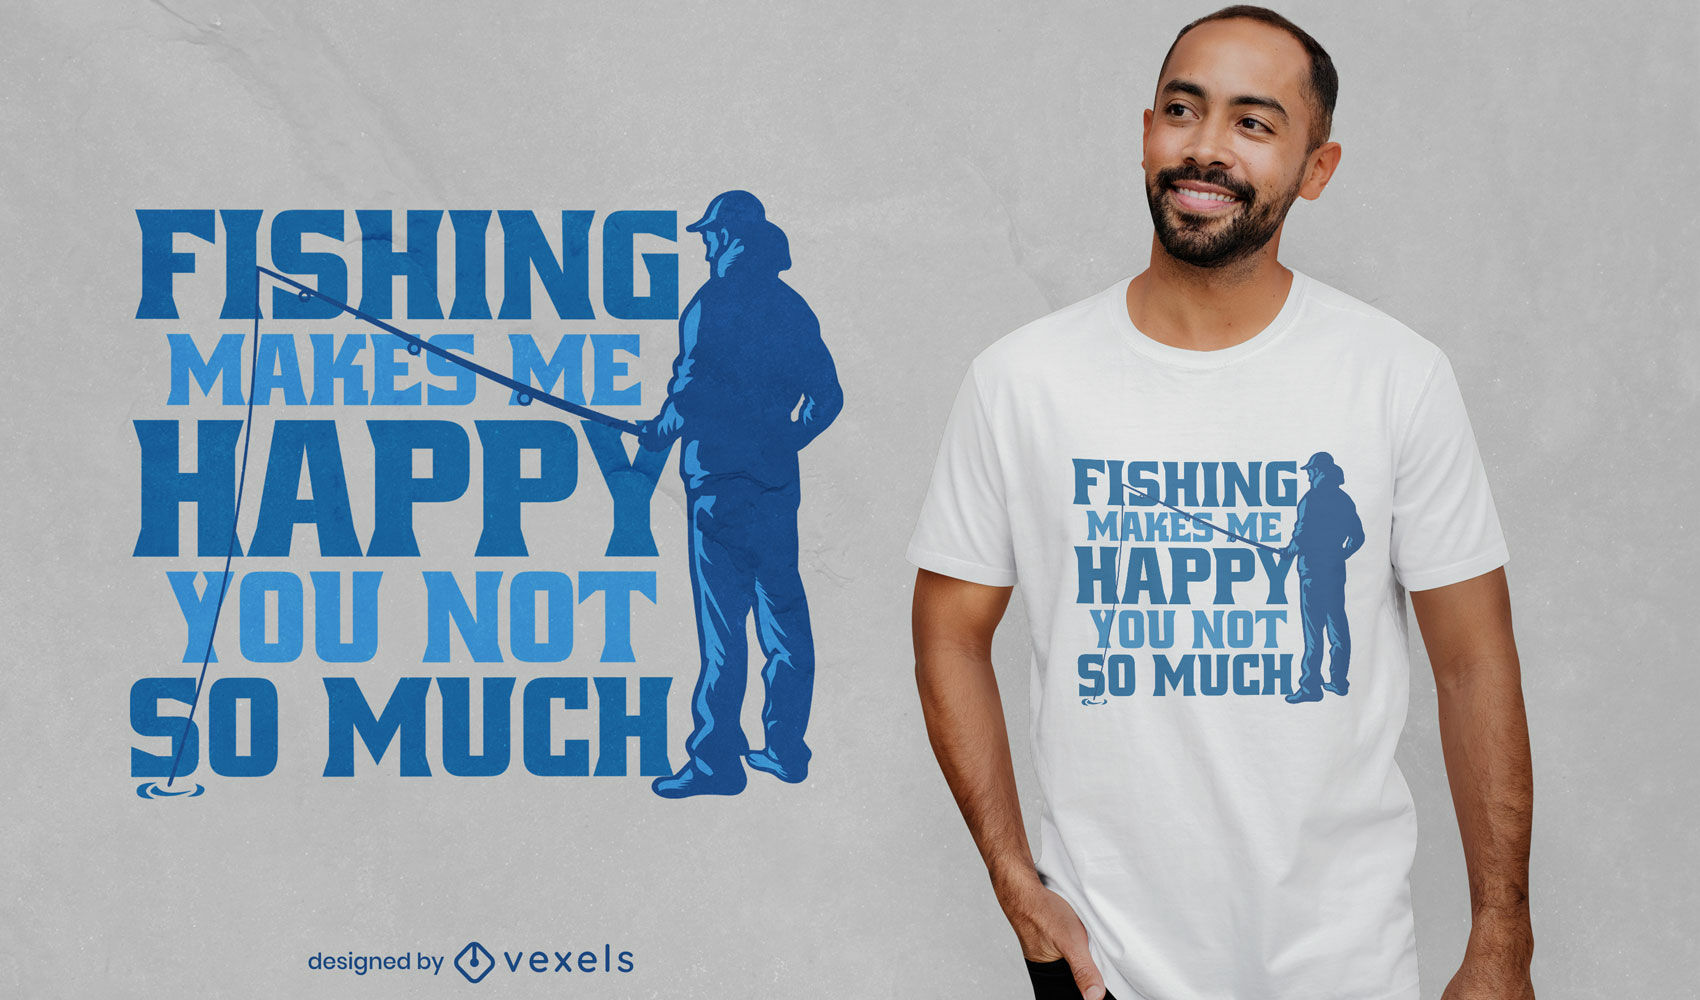 Funny fishing quote t-shirt design